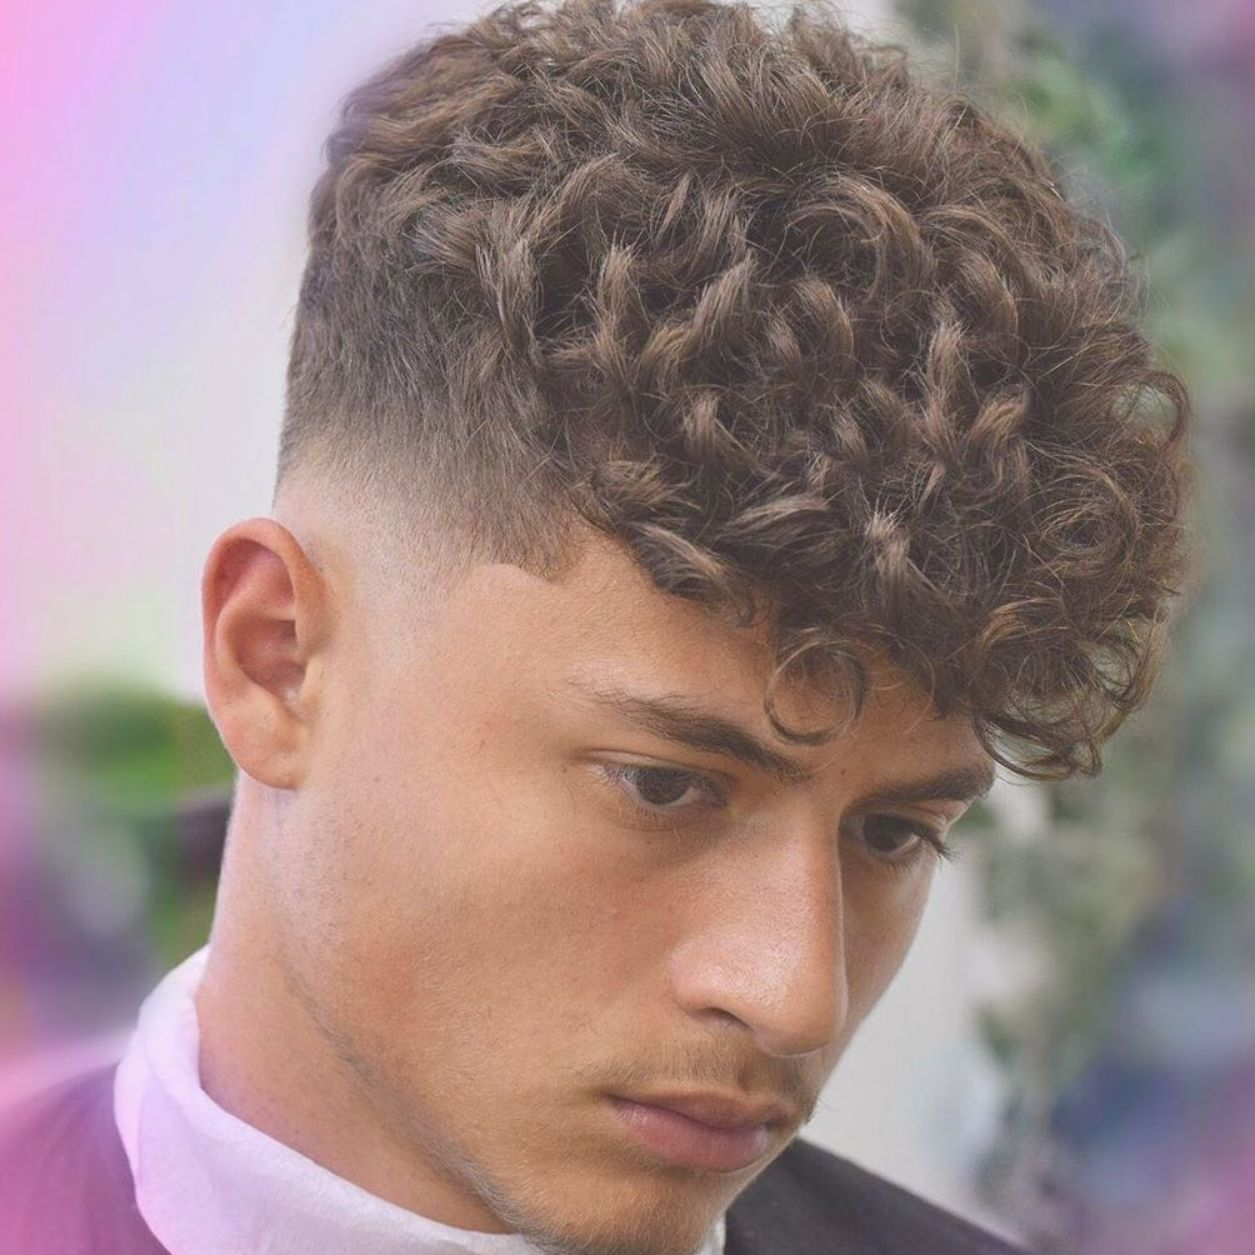 New Fade Haircuts For Curly Hair Menshair2019 Menshair Menshairstyles Menshaircuts Bestmenshairst Curly Hair Men Young Men Haircuts Mens Hairstyles Curly